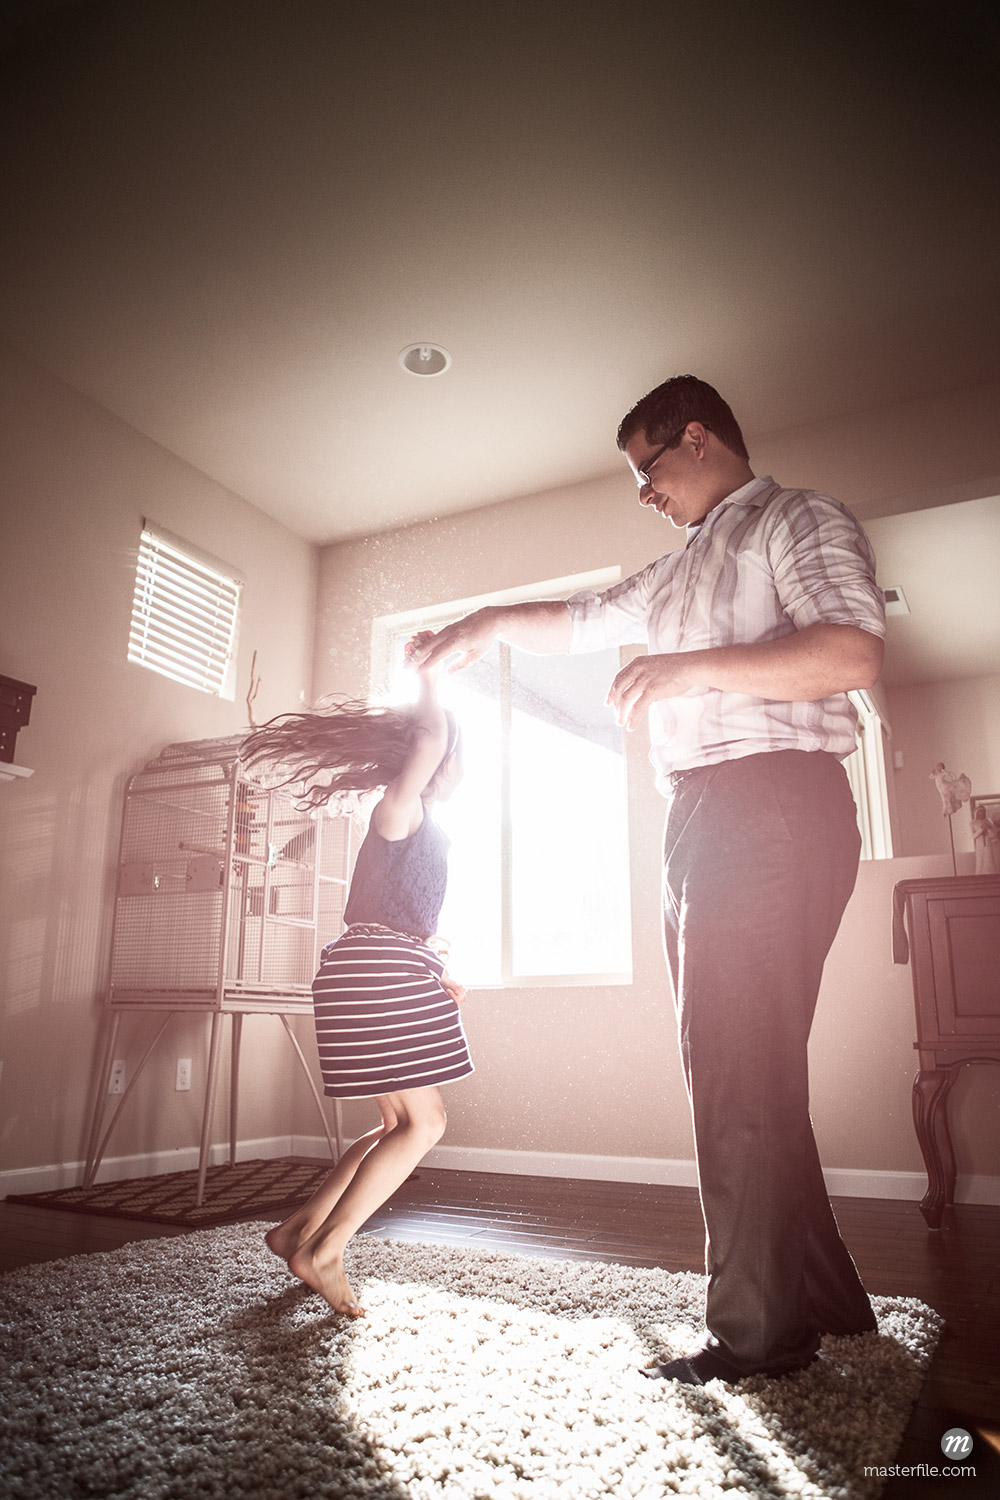 Father and daughter dancing in living room © Blend Images / Masterfile